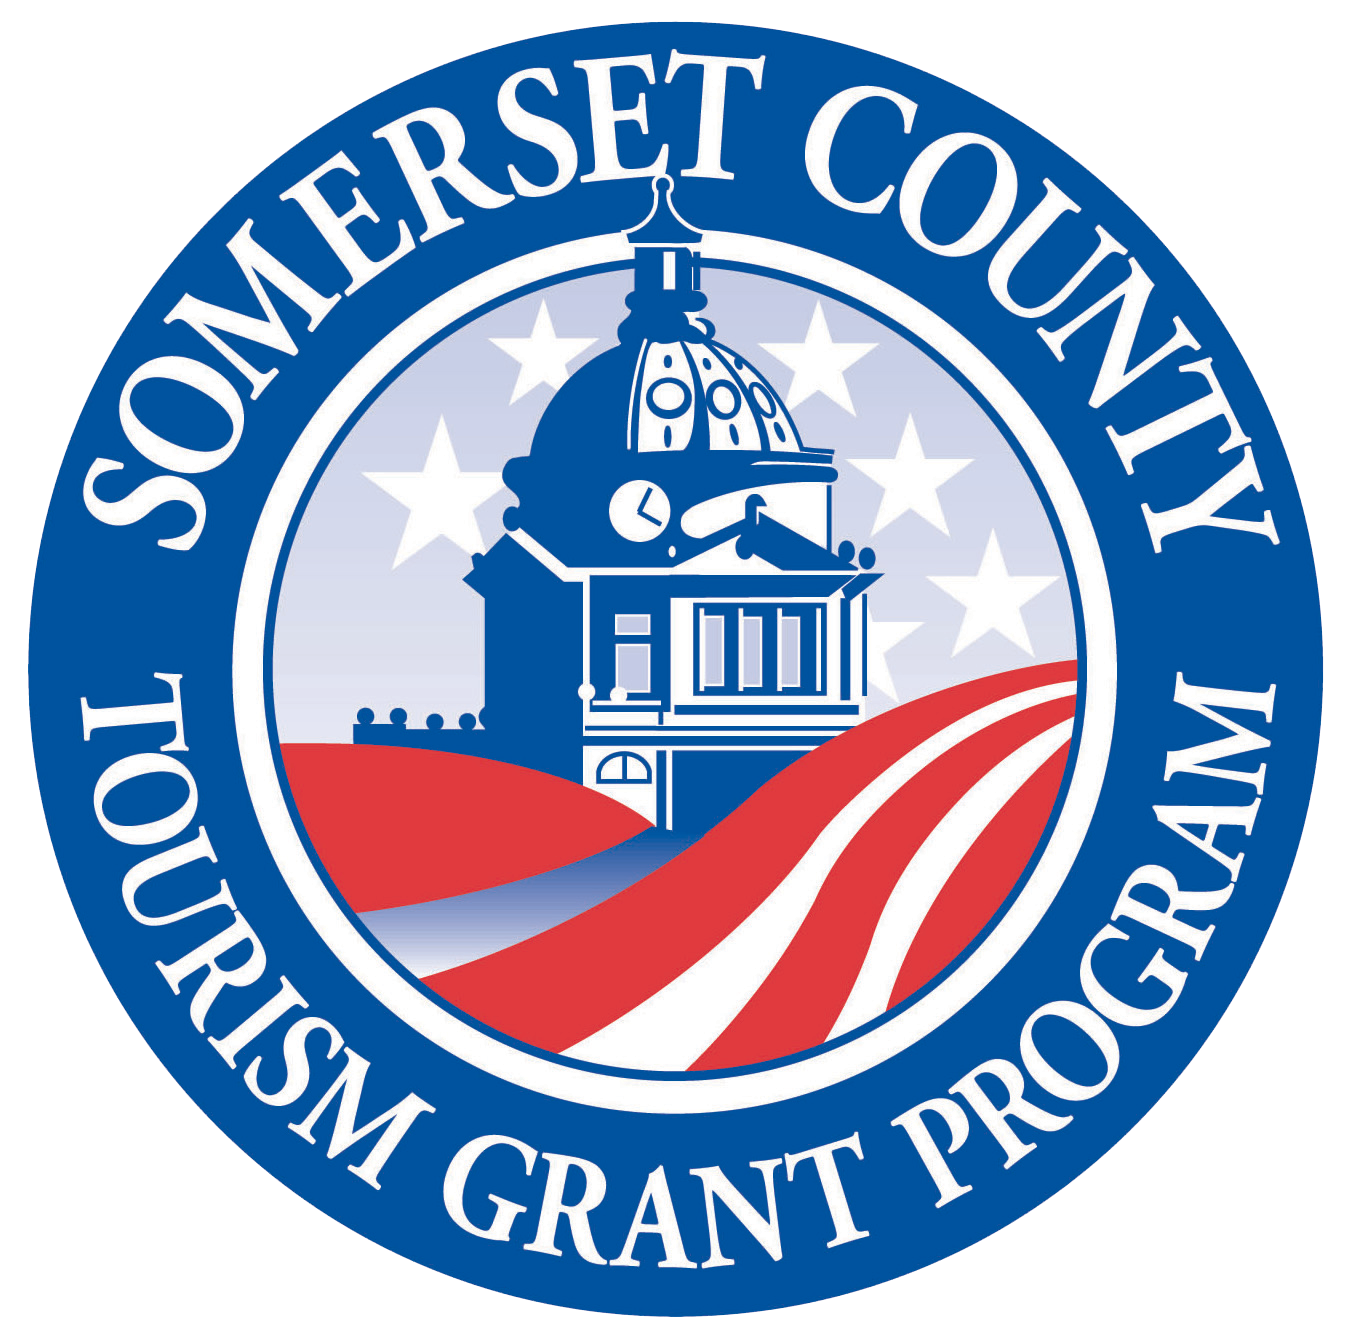 Somerset County Tourism Grant Program